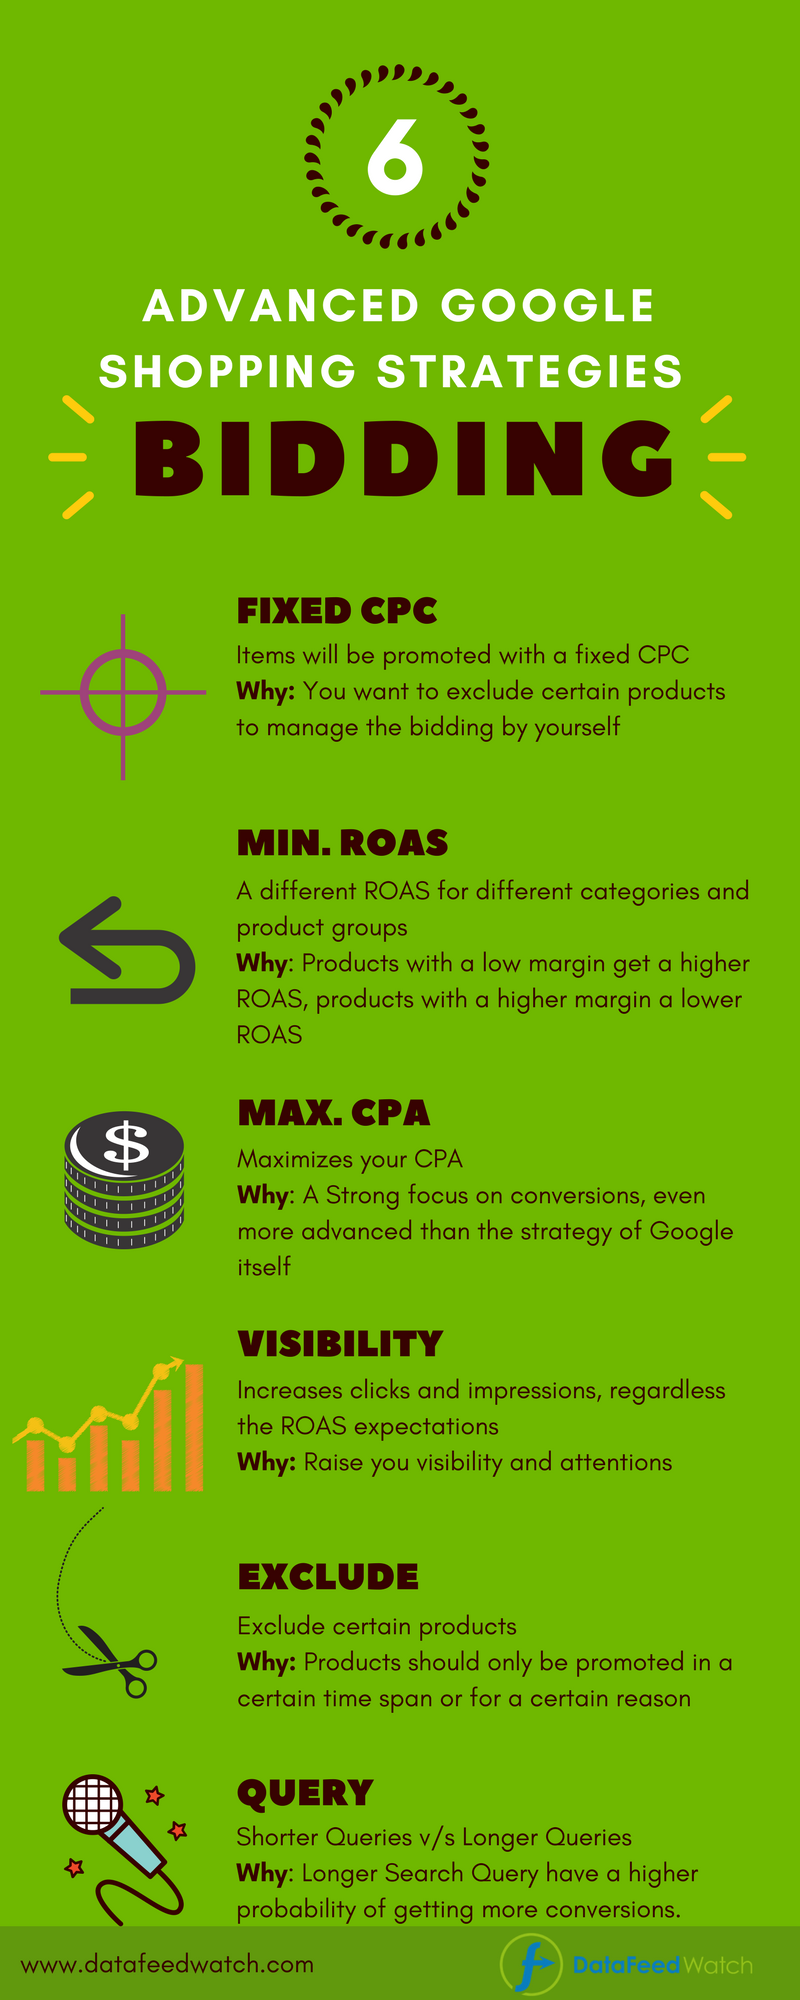 advanced-google-shopping-bid-strategies (1).png